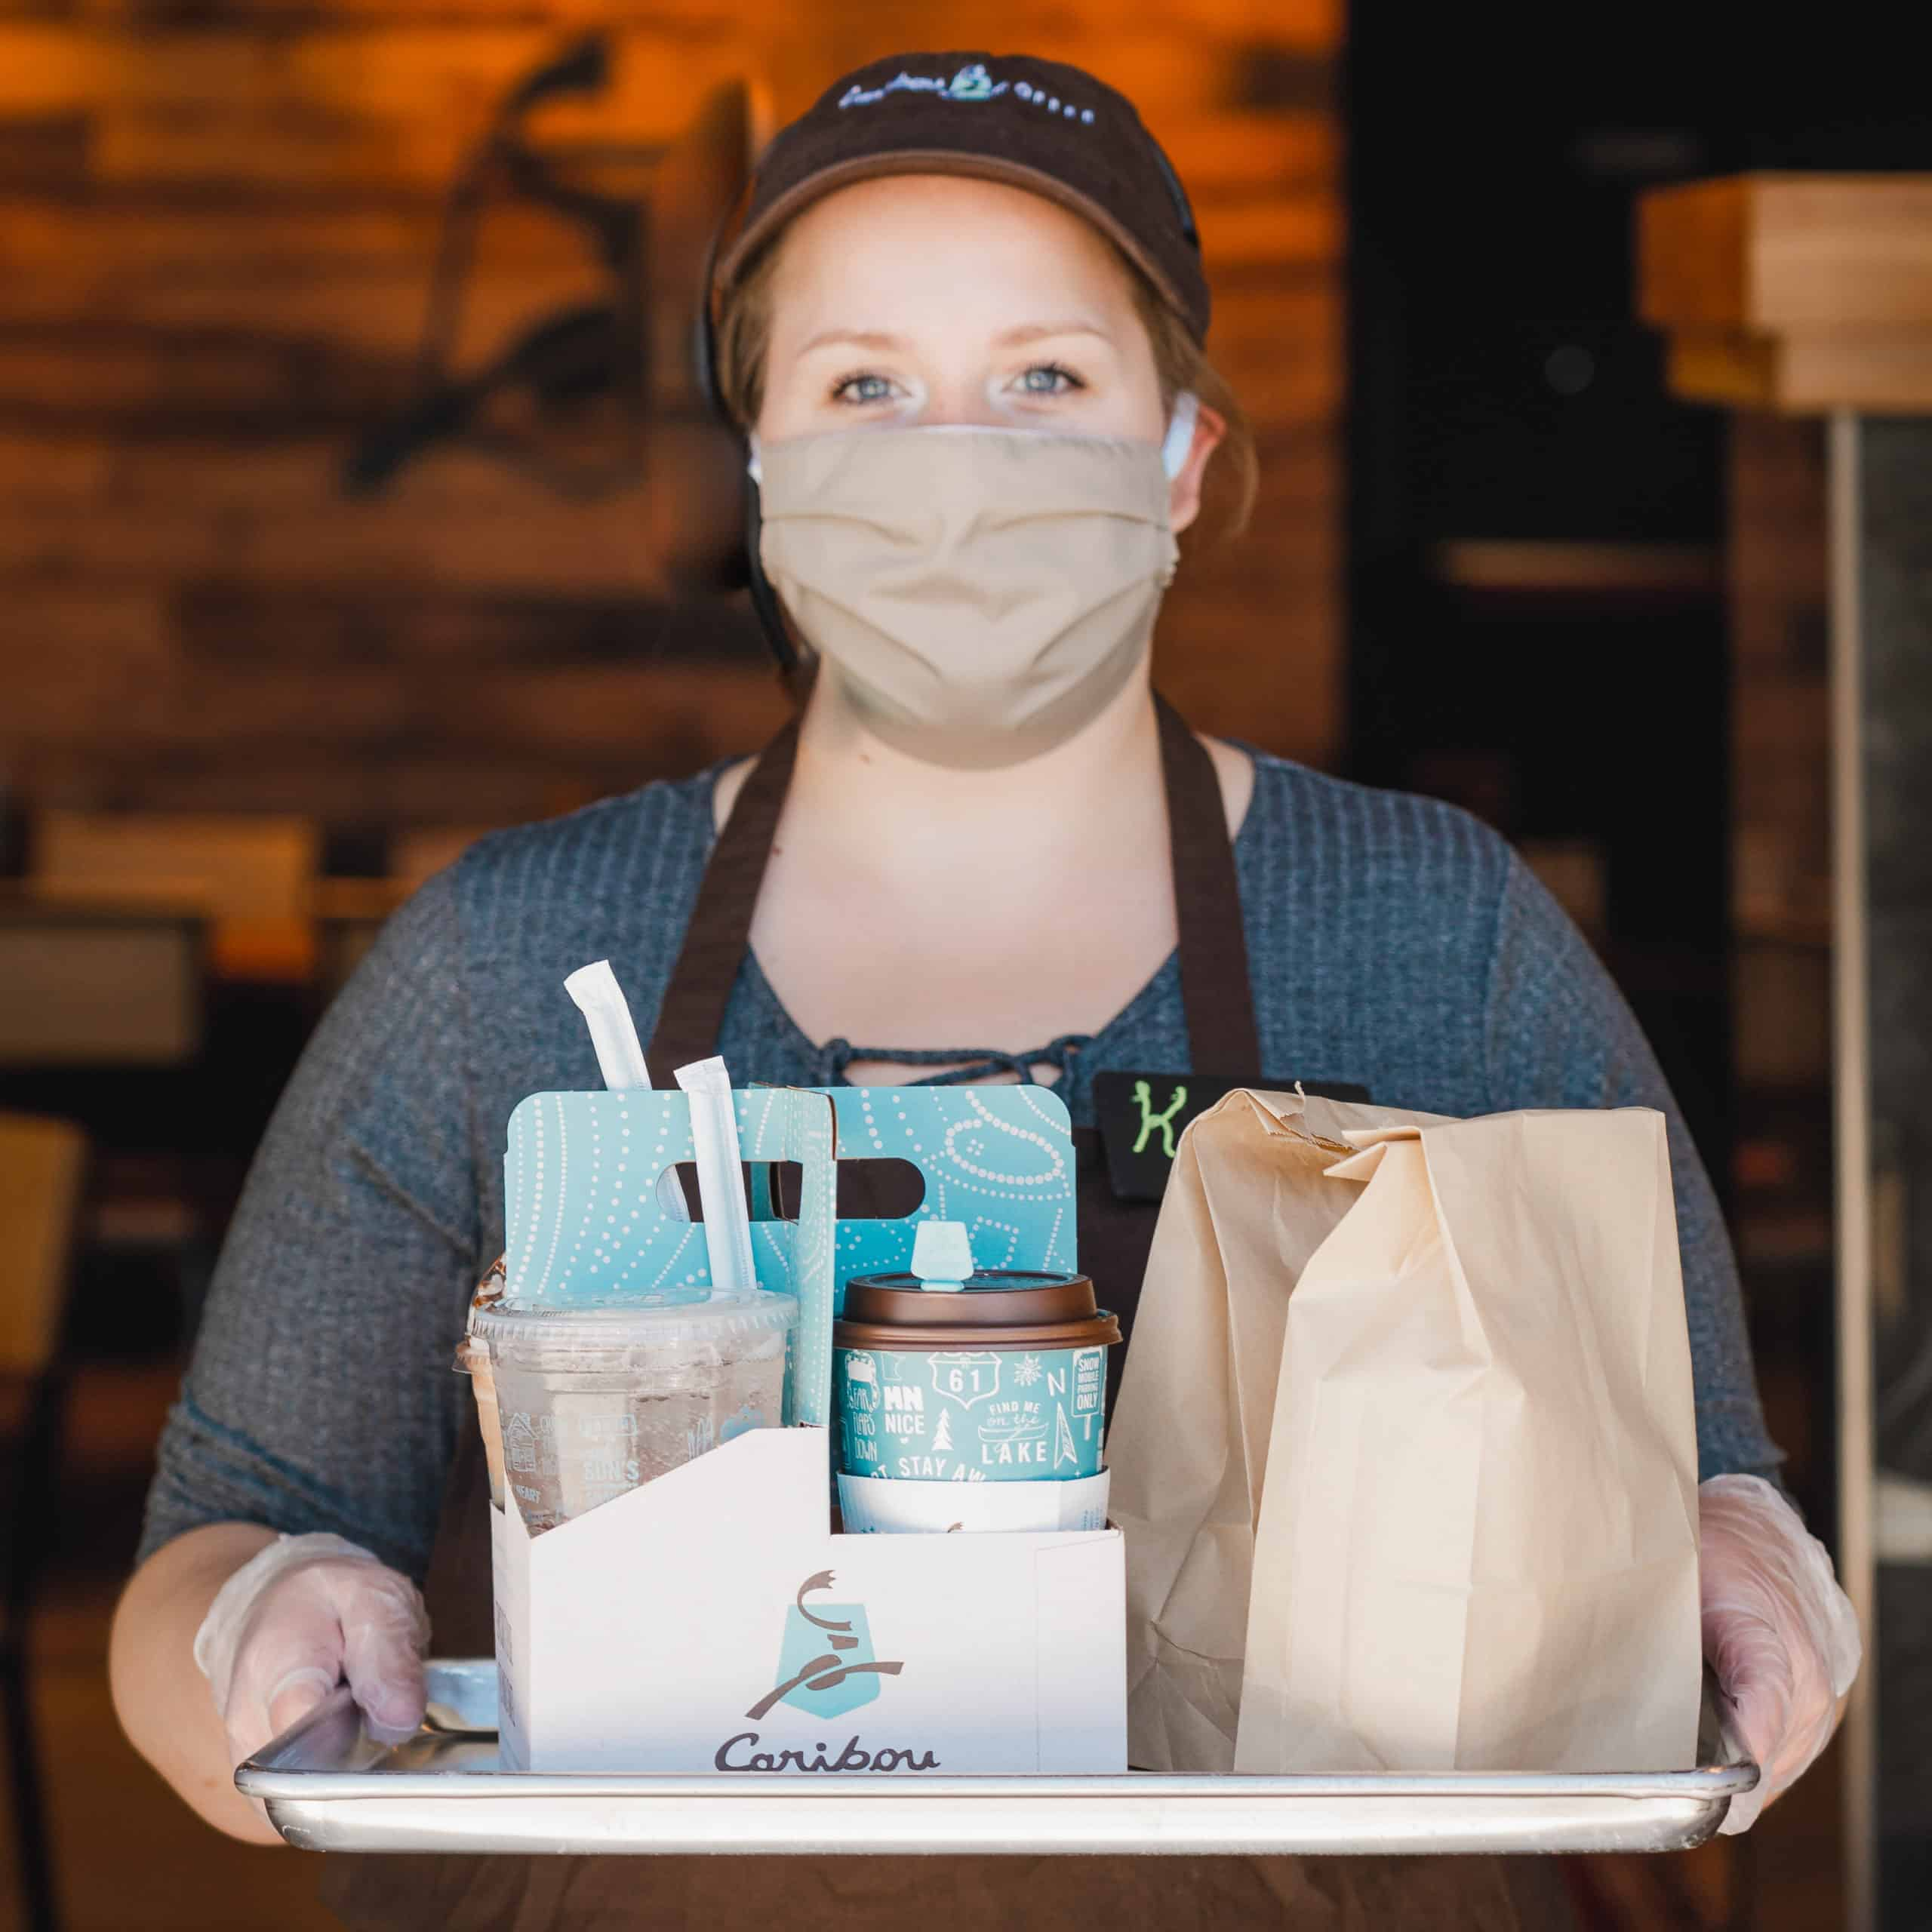 Caribou Employee wearing mask, serving coffee